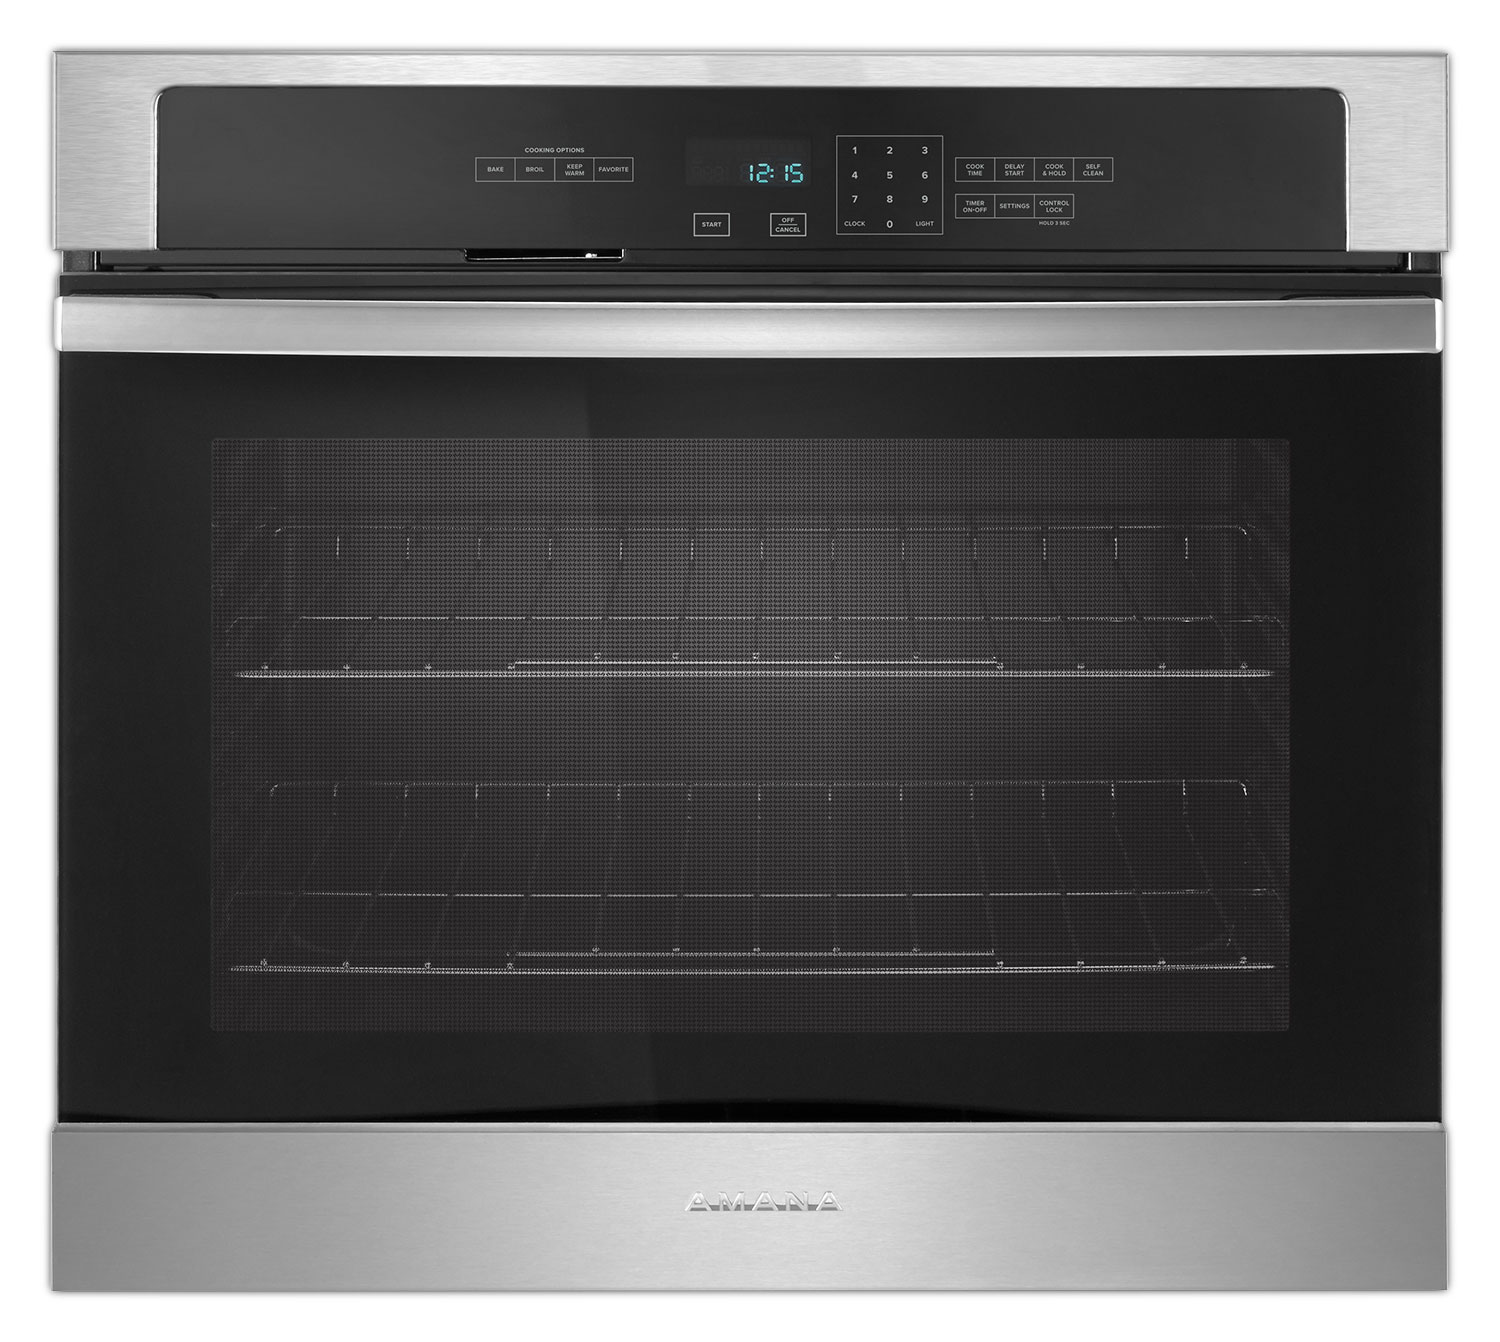 Cooking Products - Amana Stainless Steel Electric Wall Oven (4.3 Cu. Ft.) - AWO6317SFS